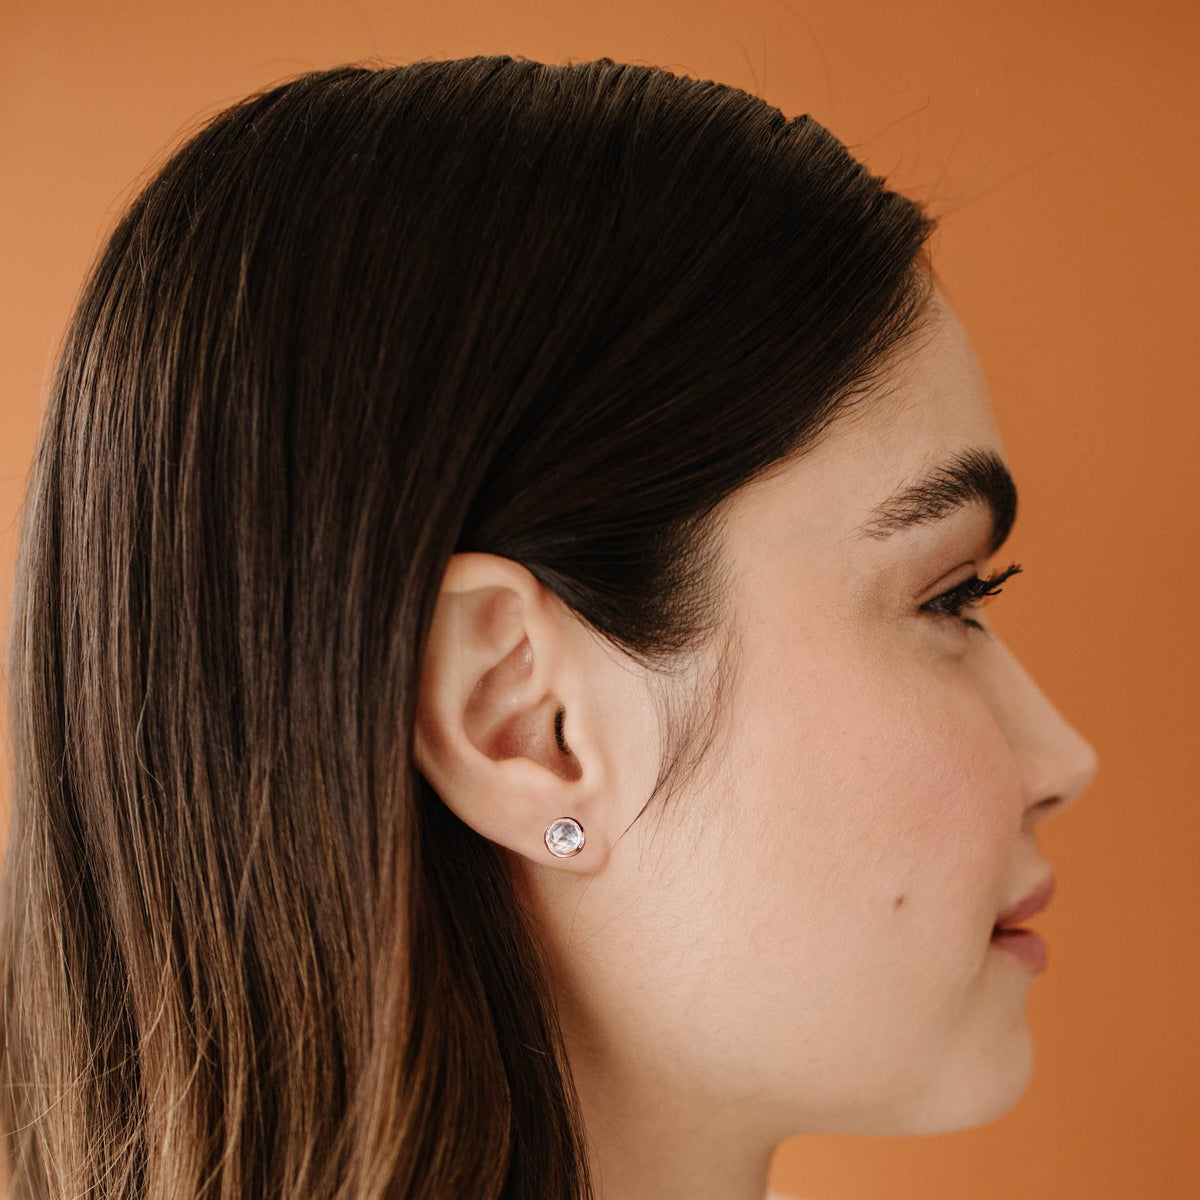 DAINTY LEGACY STUDS - WHITE TOPAZ & ROSE GOLD - SO PRETTY CARA COTTER